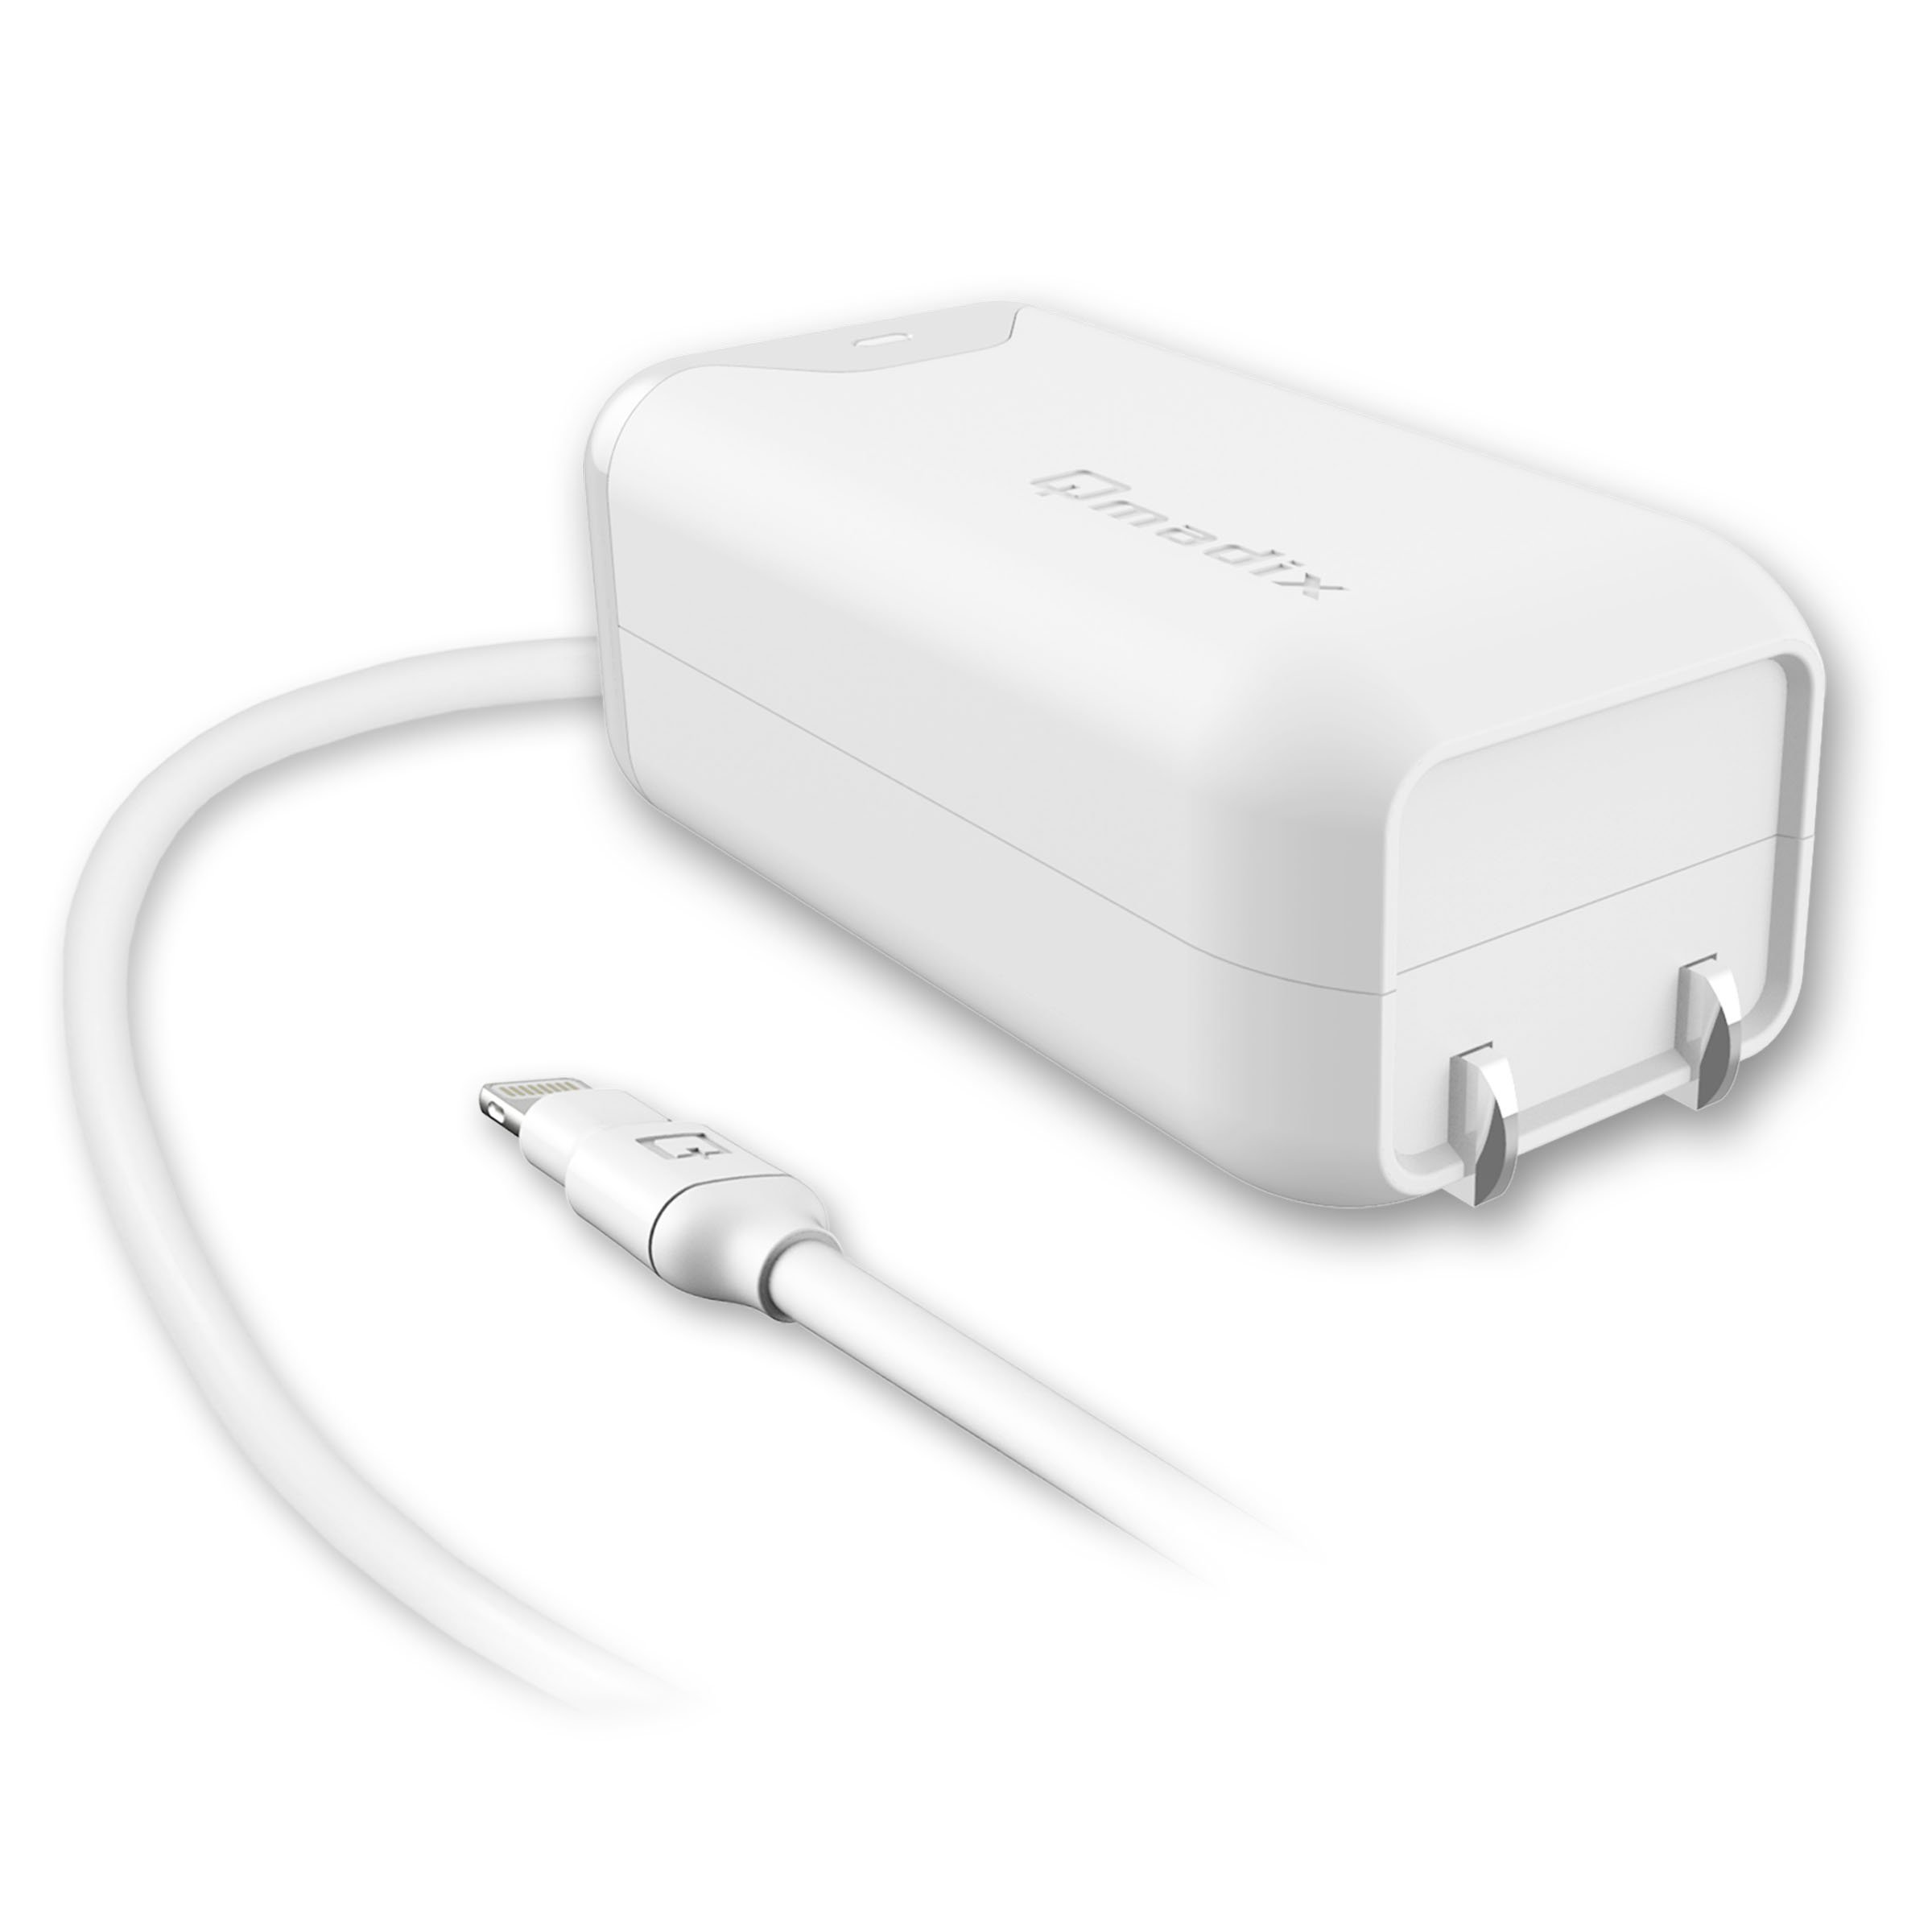 Apple Certified Lightning Travel Home Charger for iPhone, iPad and iPod - 2.4 Amp Apple Travel Home Charger Compatible with iPhone, iPad and iPod Products